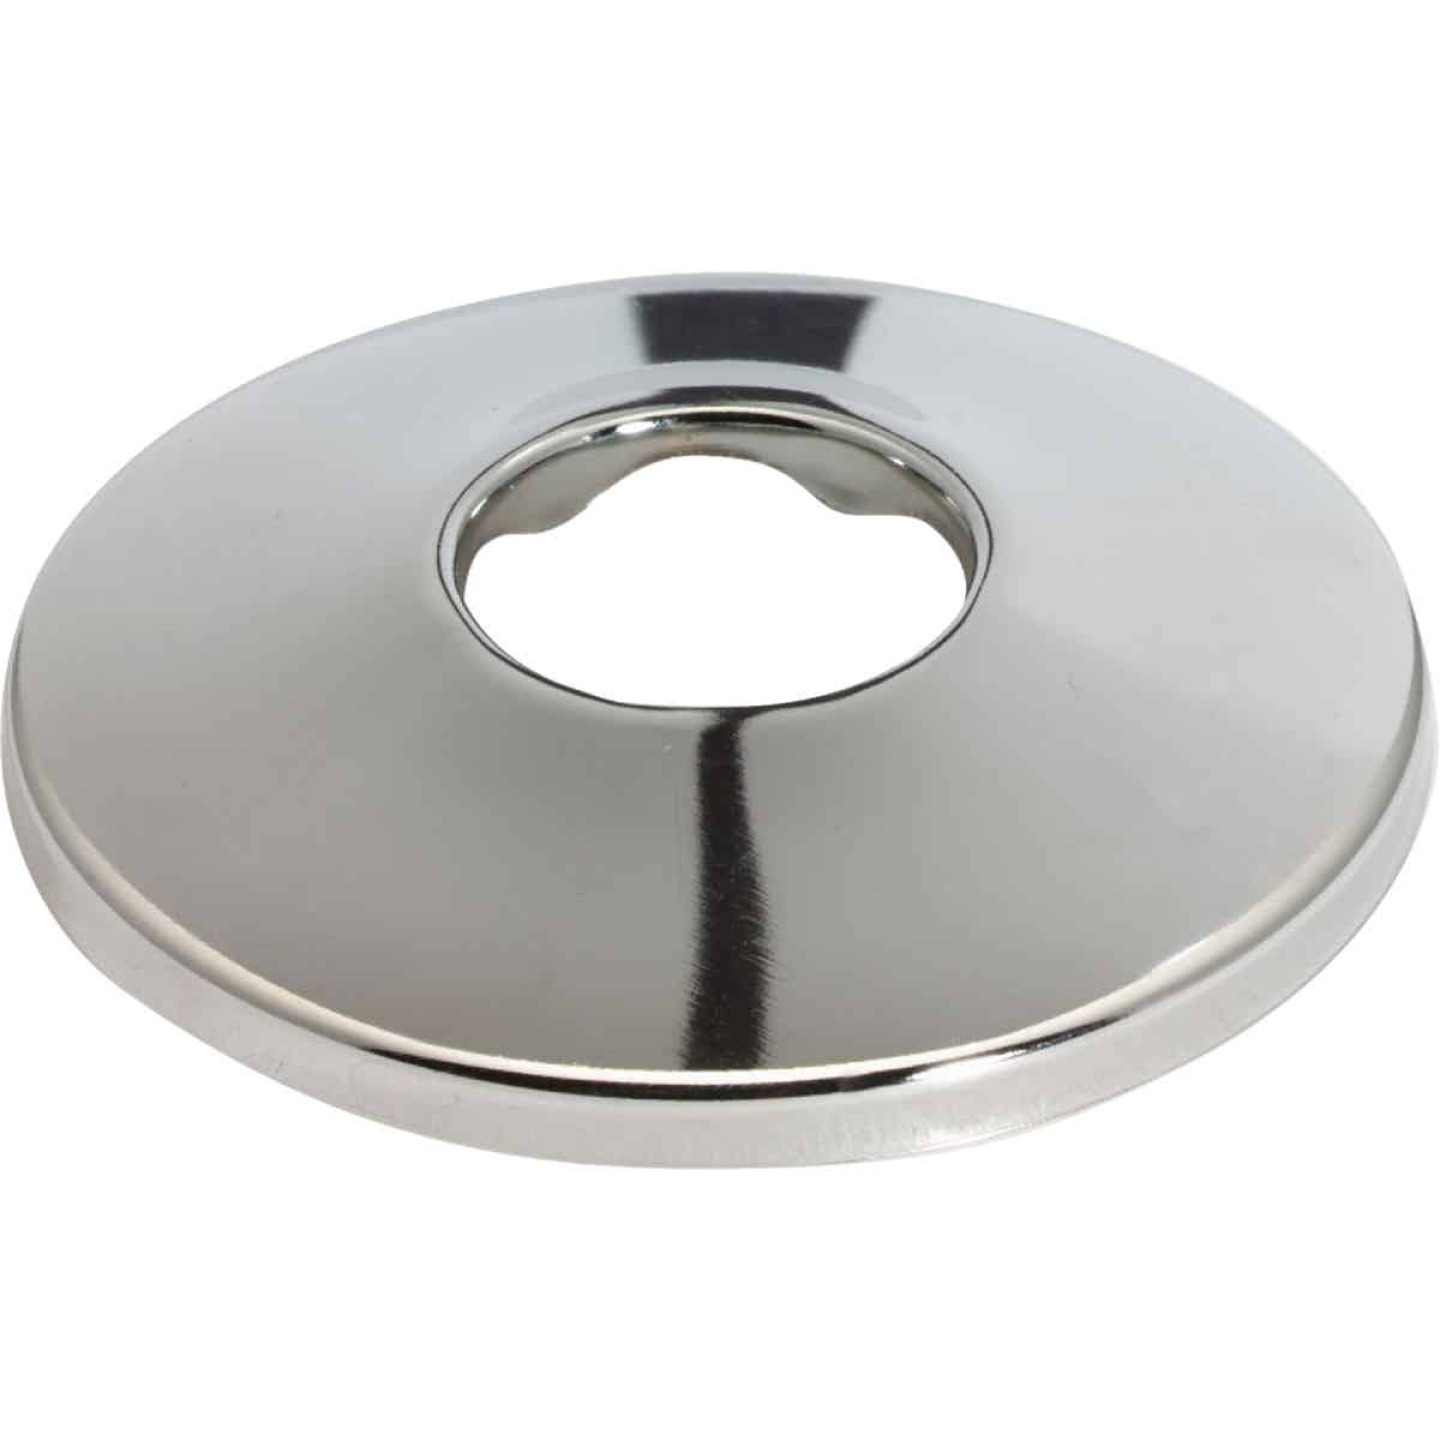 Do it Best 3/4 In. CTS Chrome-Plated Shallow Flange Image 1